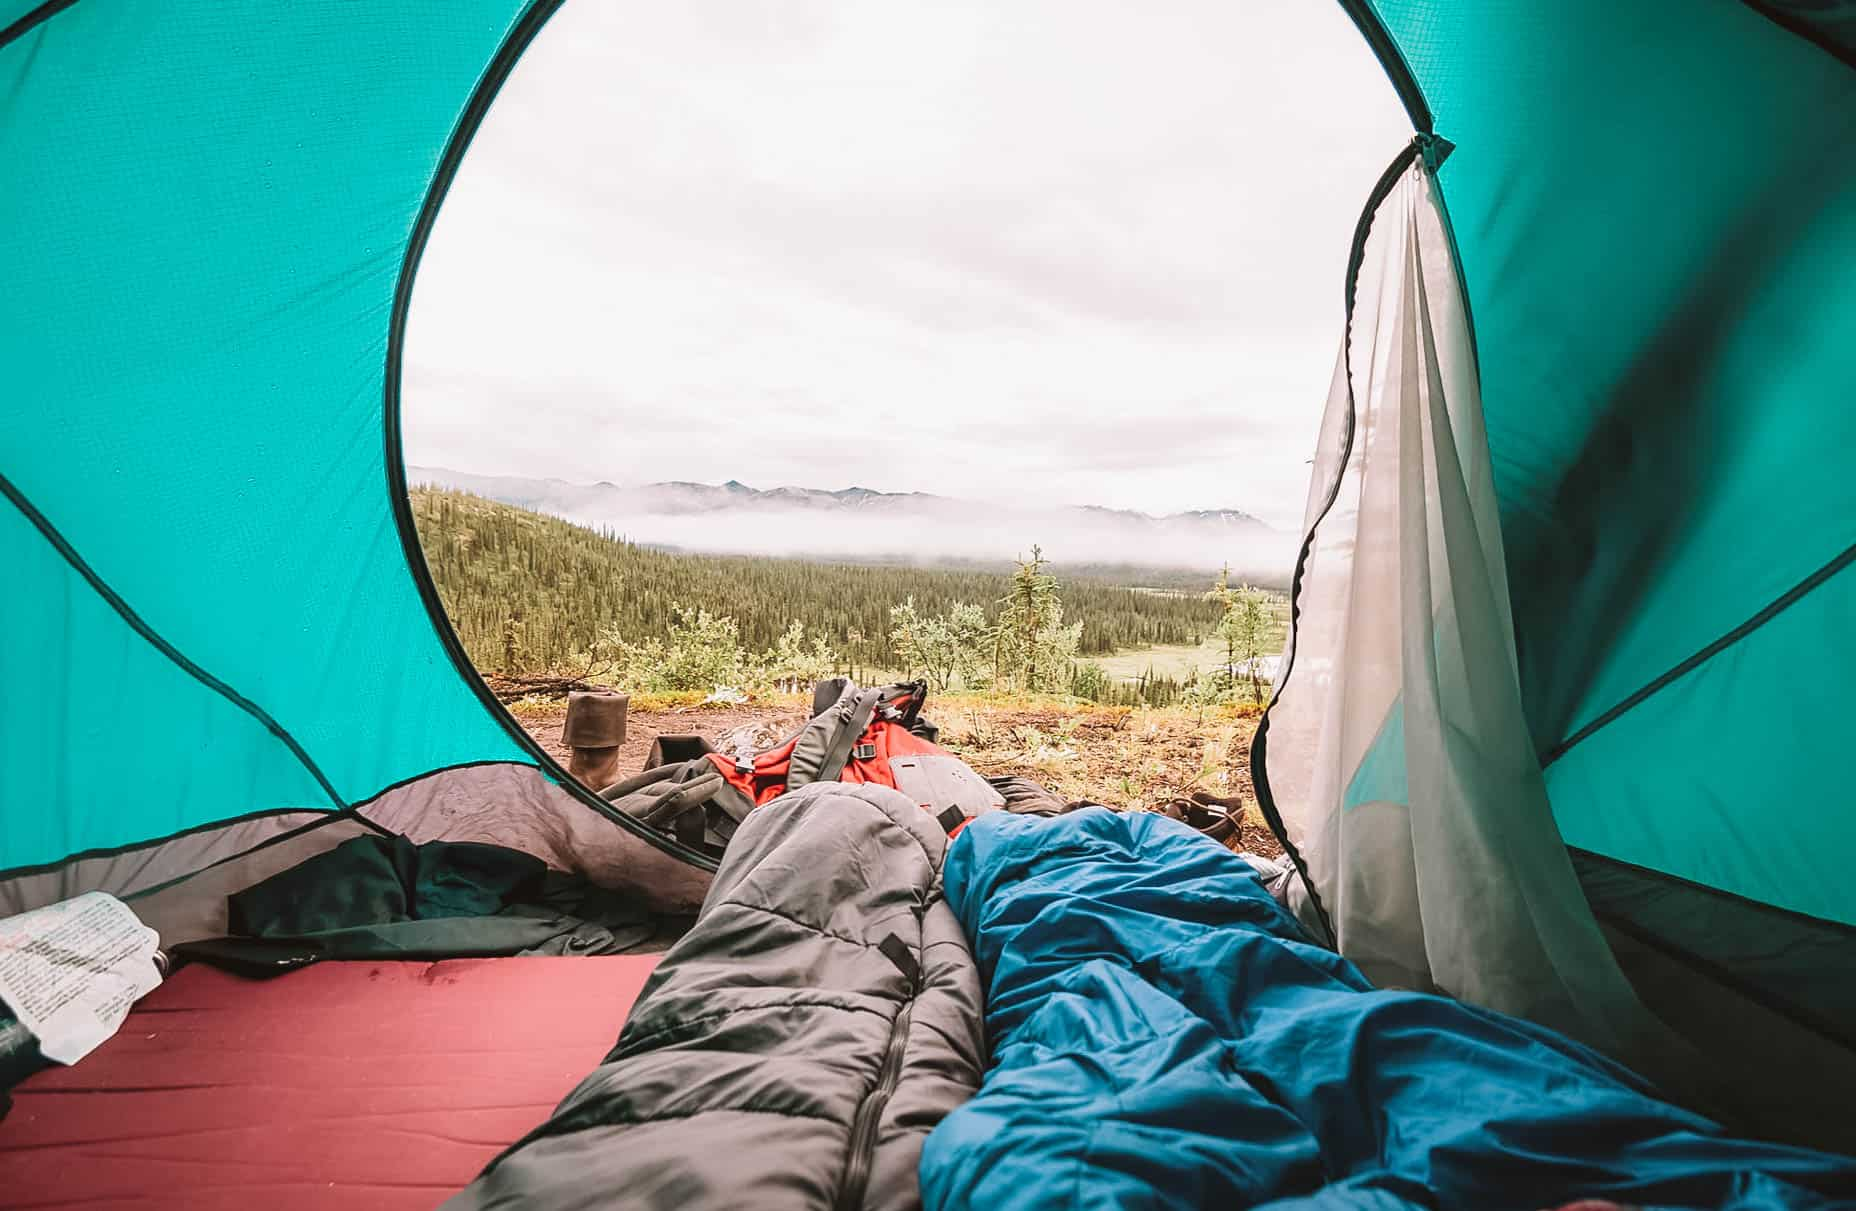 3 room camping tents